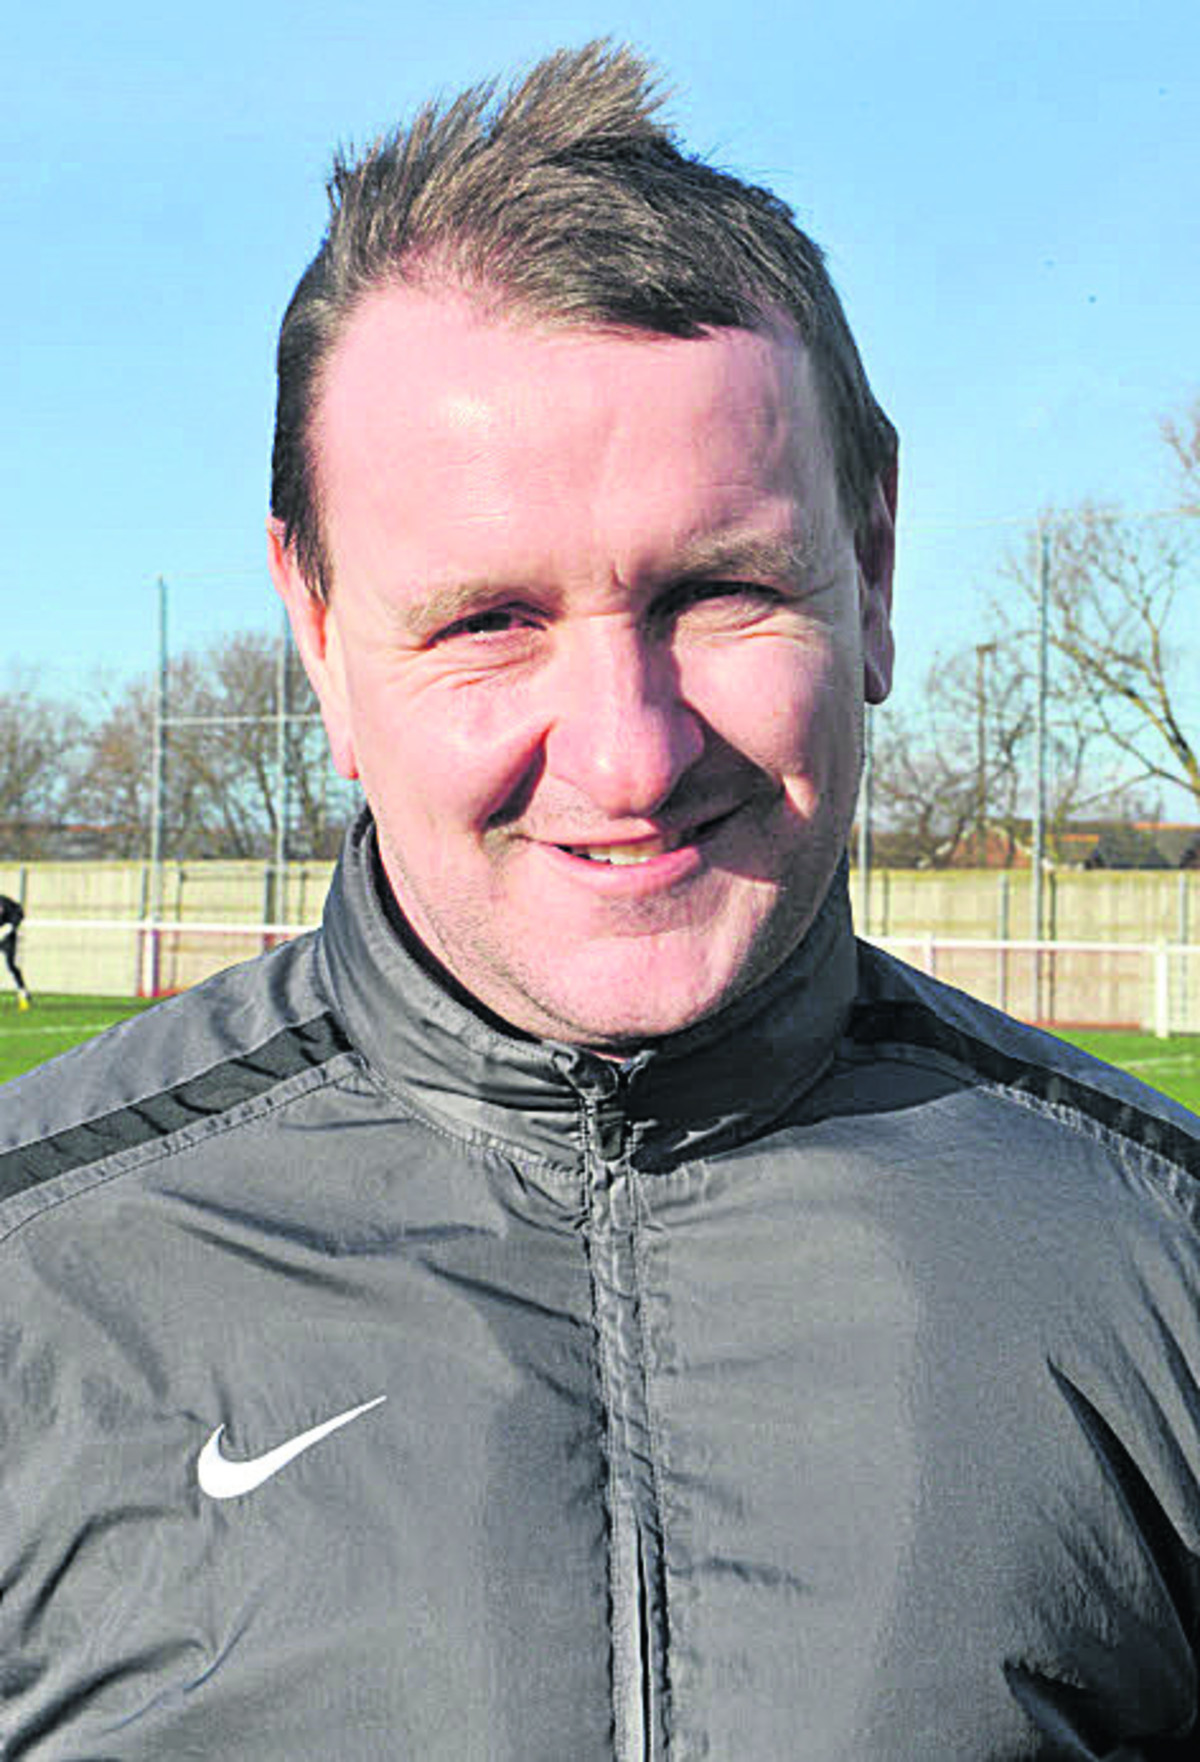 Didcot Town's joint boss Ian Concannon